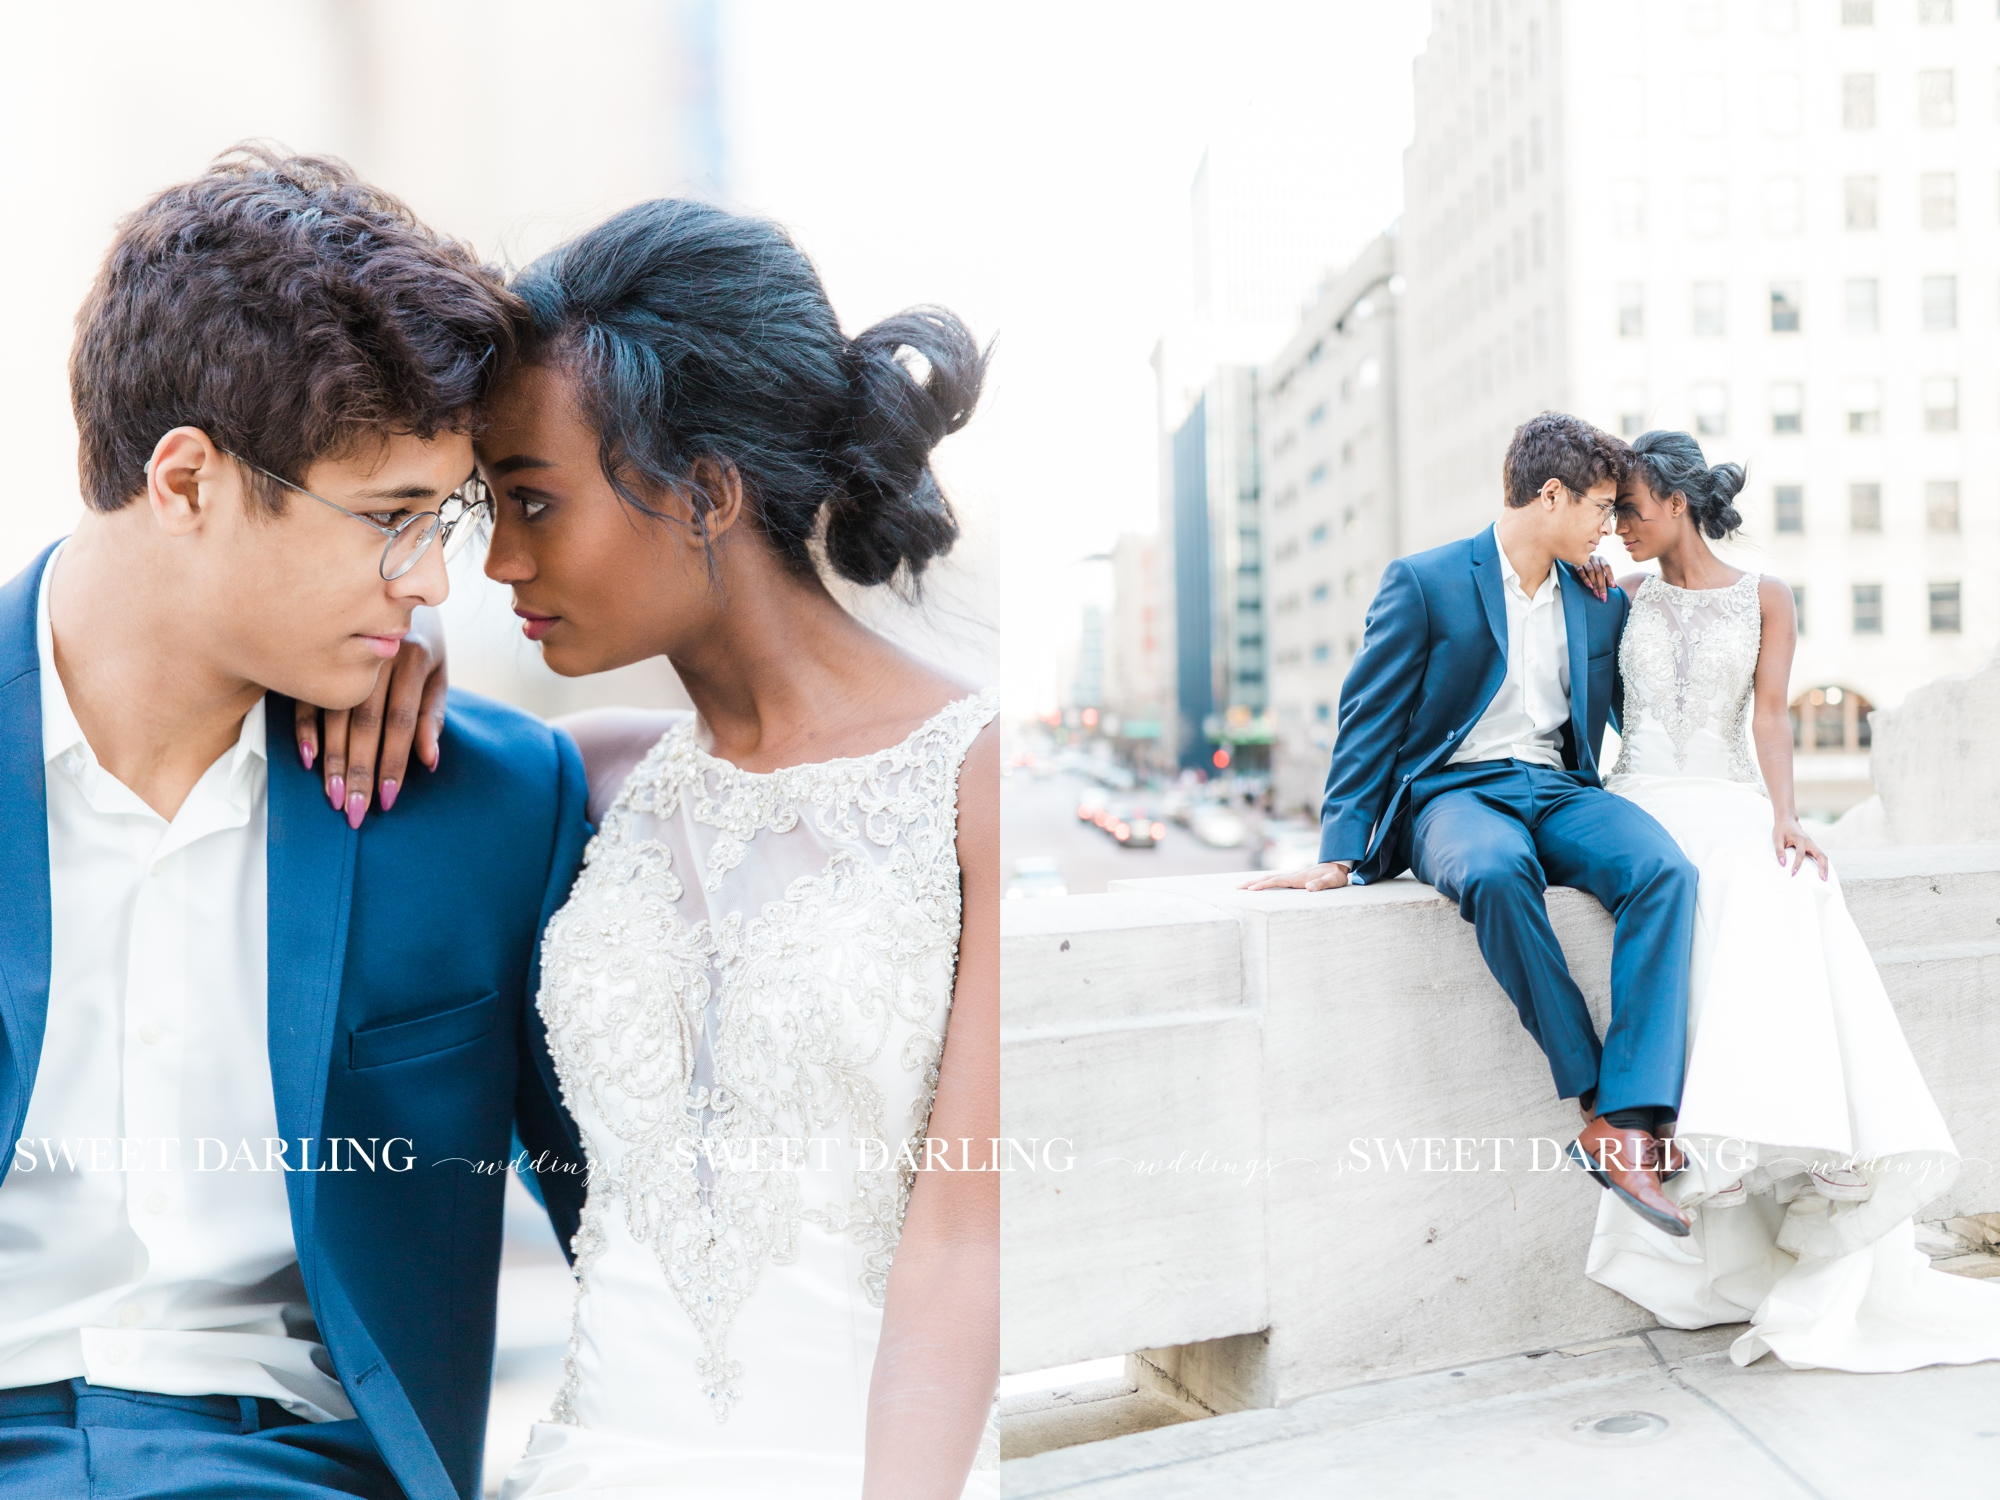 Indianapolis-Indiana-Wedding-photographer-urban-sweet-darling-champaign-IL_1494.jpg